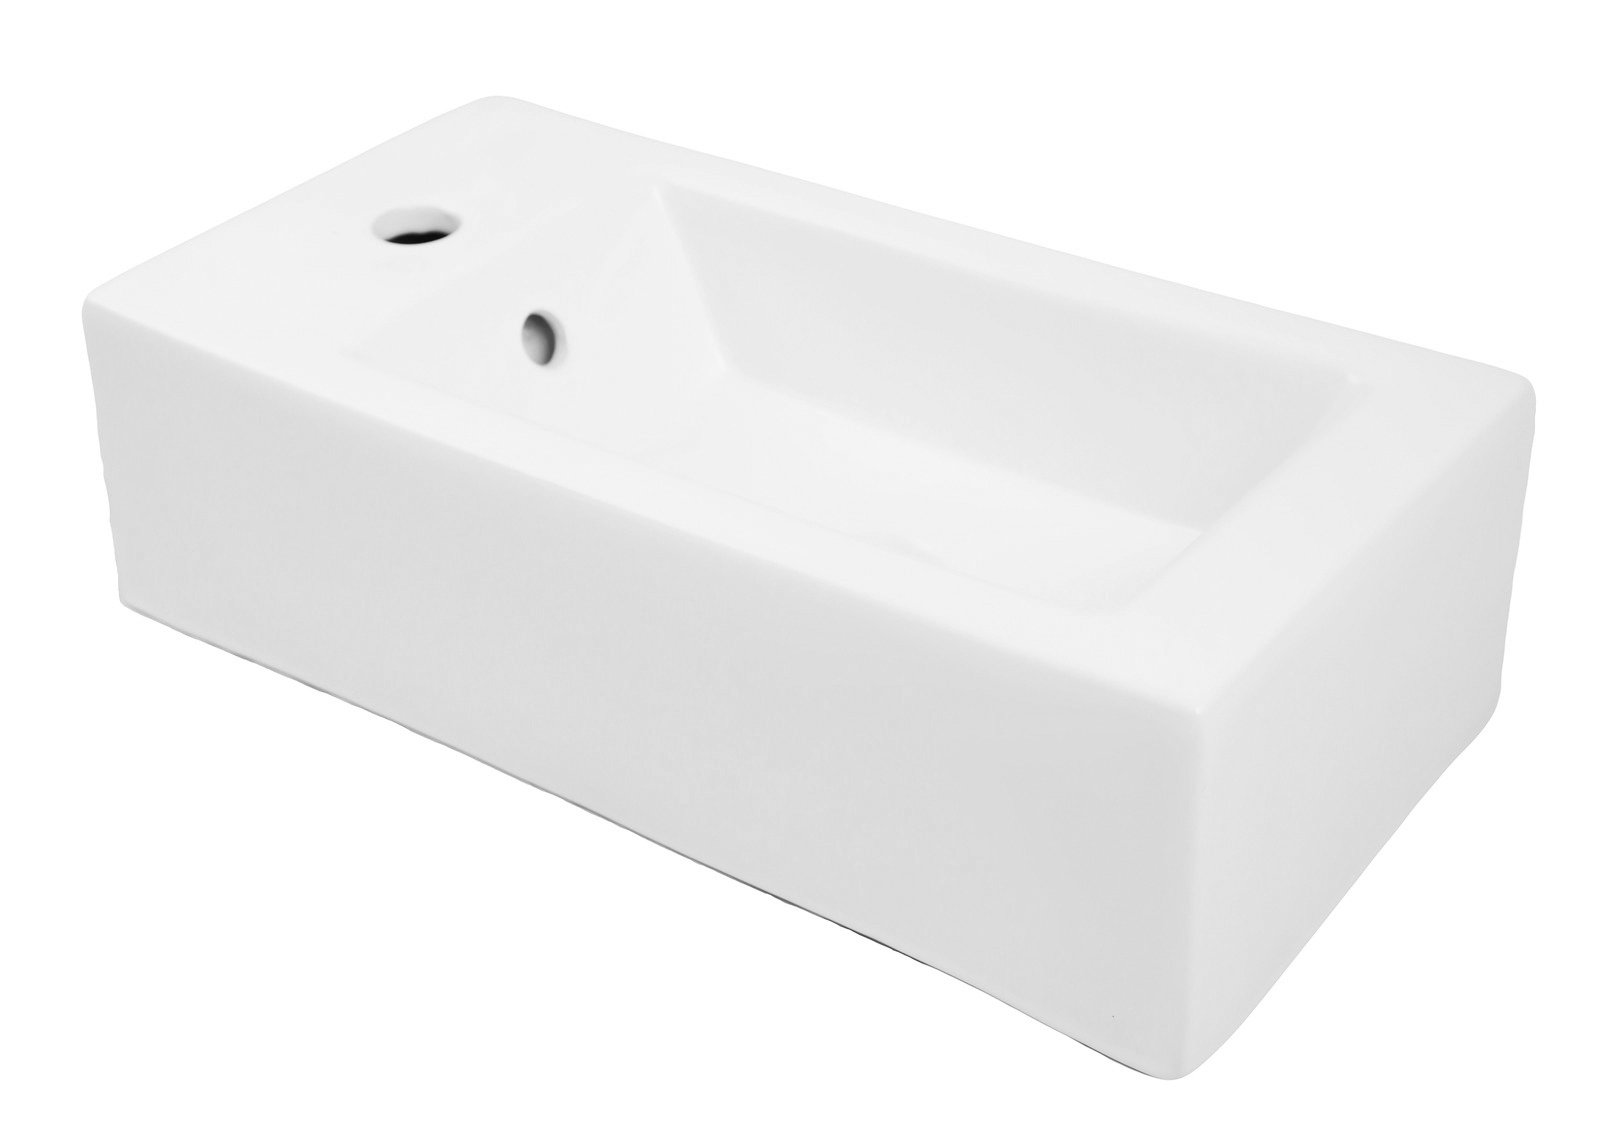 DECOLAV 1486L-CWH Eleni Classically Redefined Rectangular Wall-Mount or Above-Counter Lavatory Sink with Left Side Faucet Hole, White by Decolav